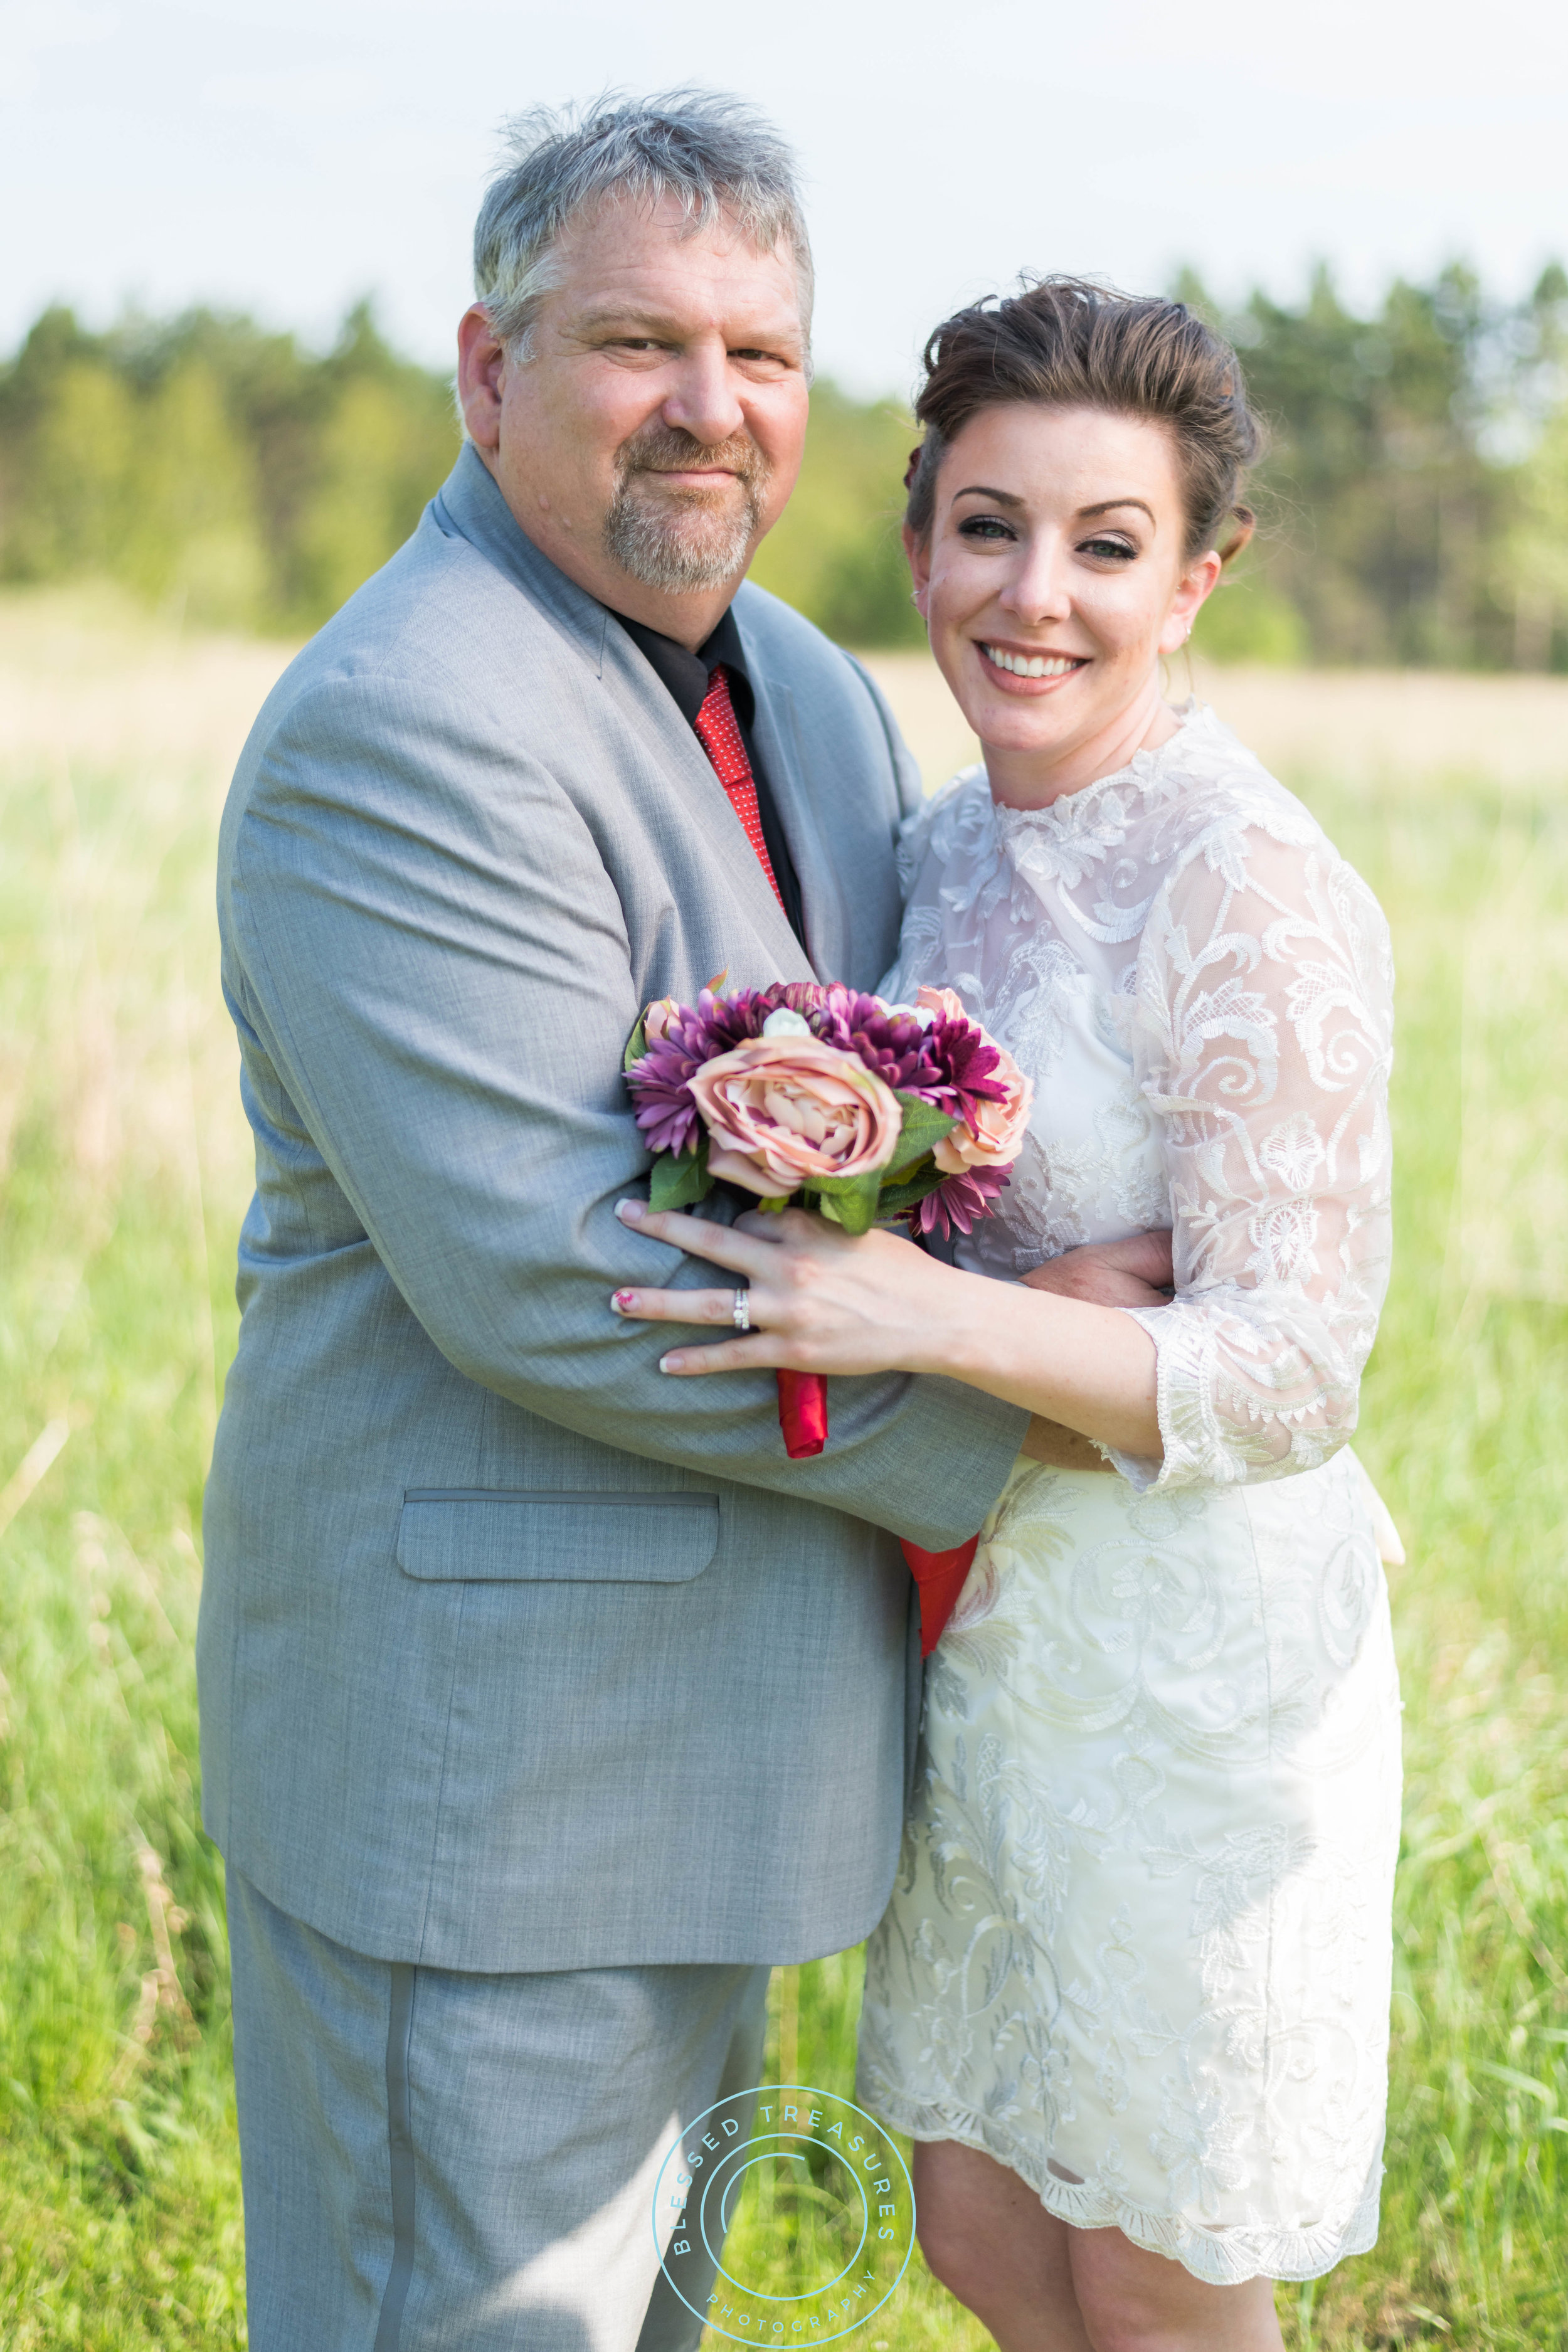 Mansfield township pioneer church crystal falls michigan wedding bride and groom portraits romantic fun happy lace dress red pumps grey suit curly brunette wedding updo